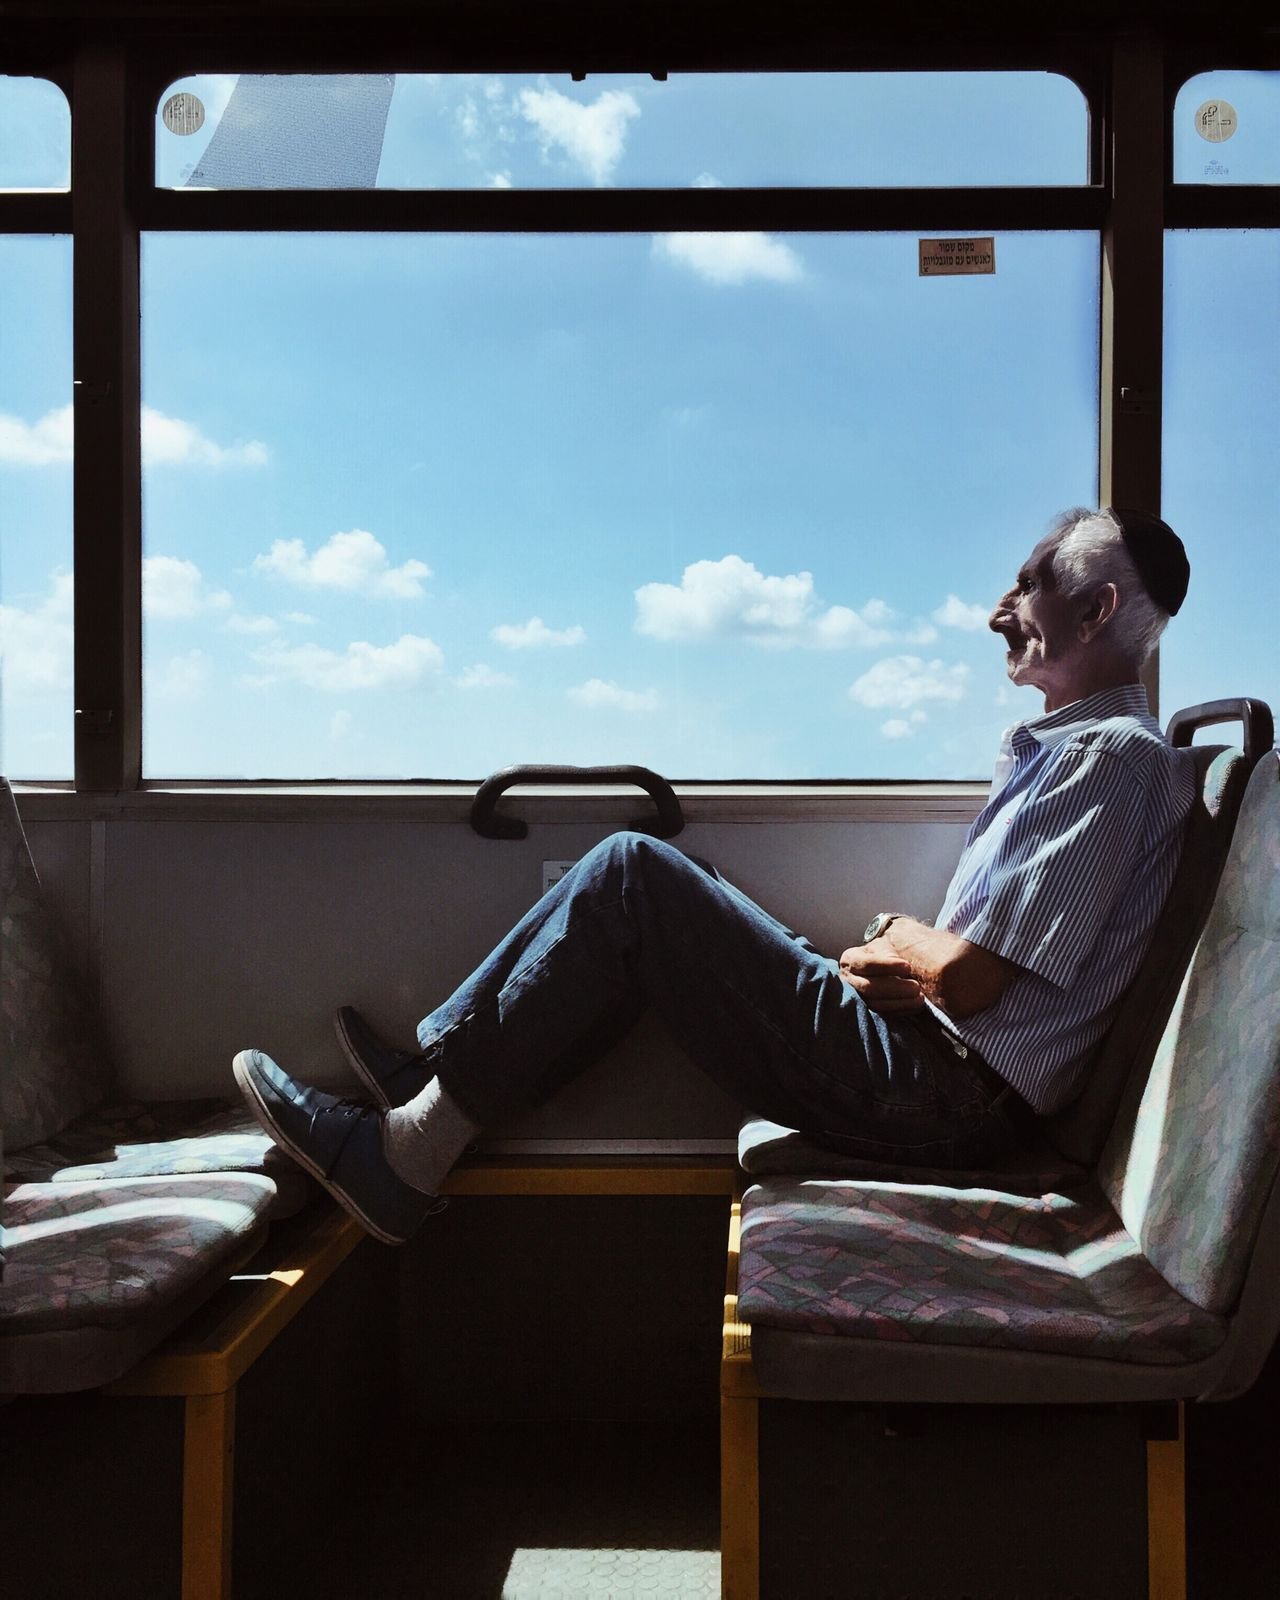 sitting, chair, window, one person, sky